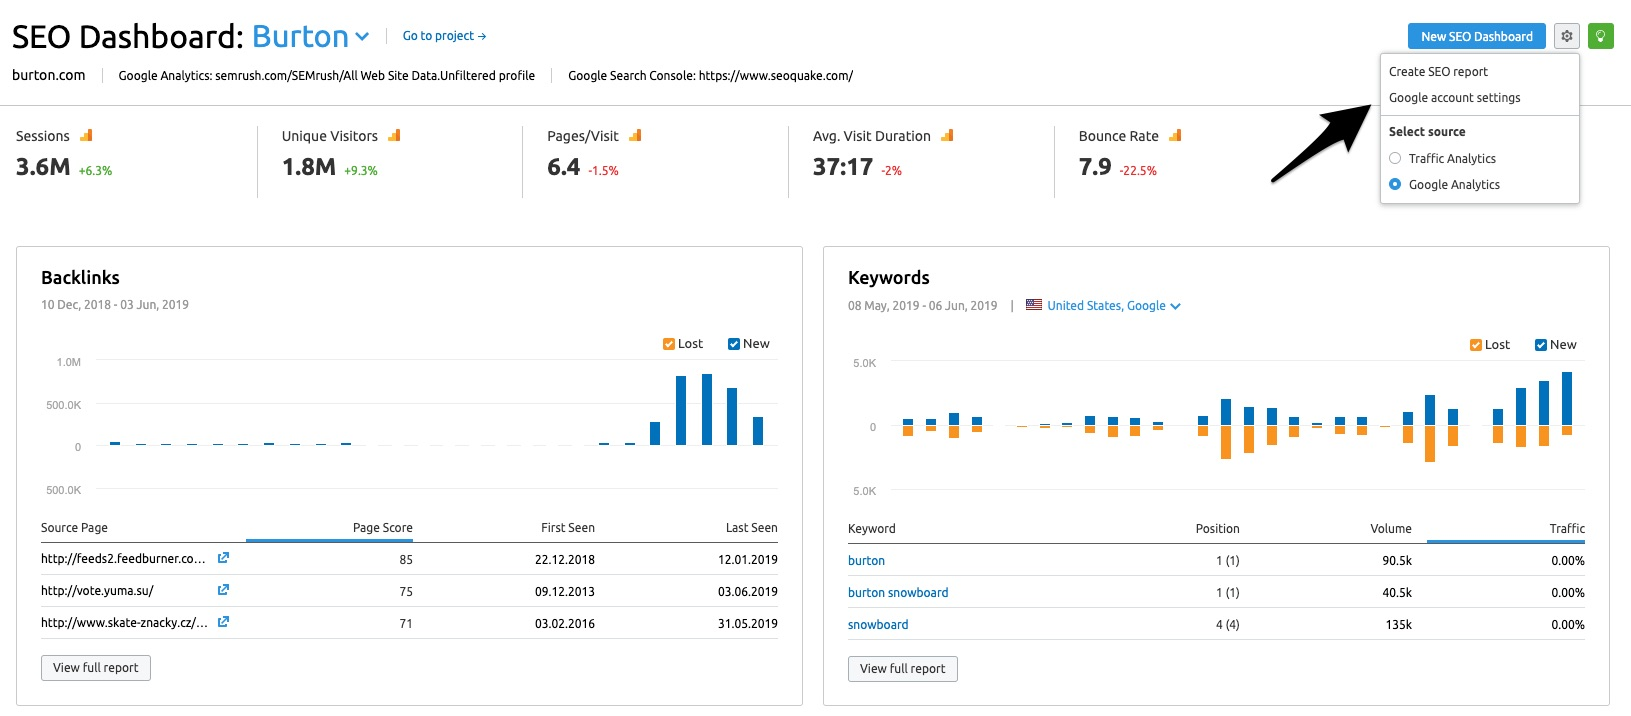 SEO Dashboard image 4